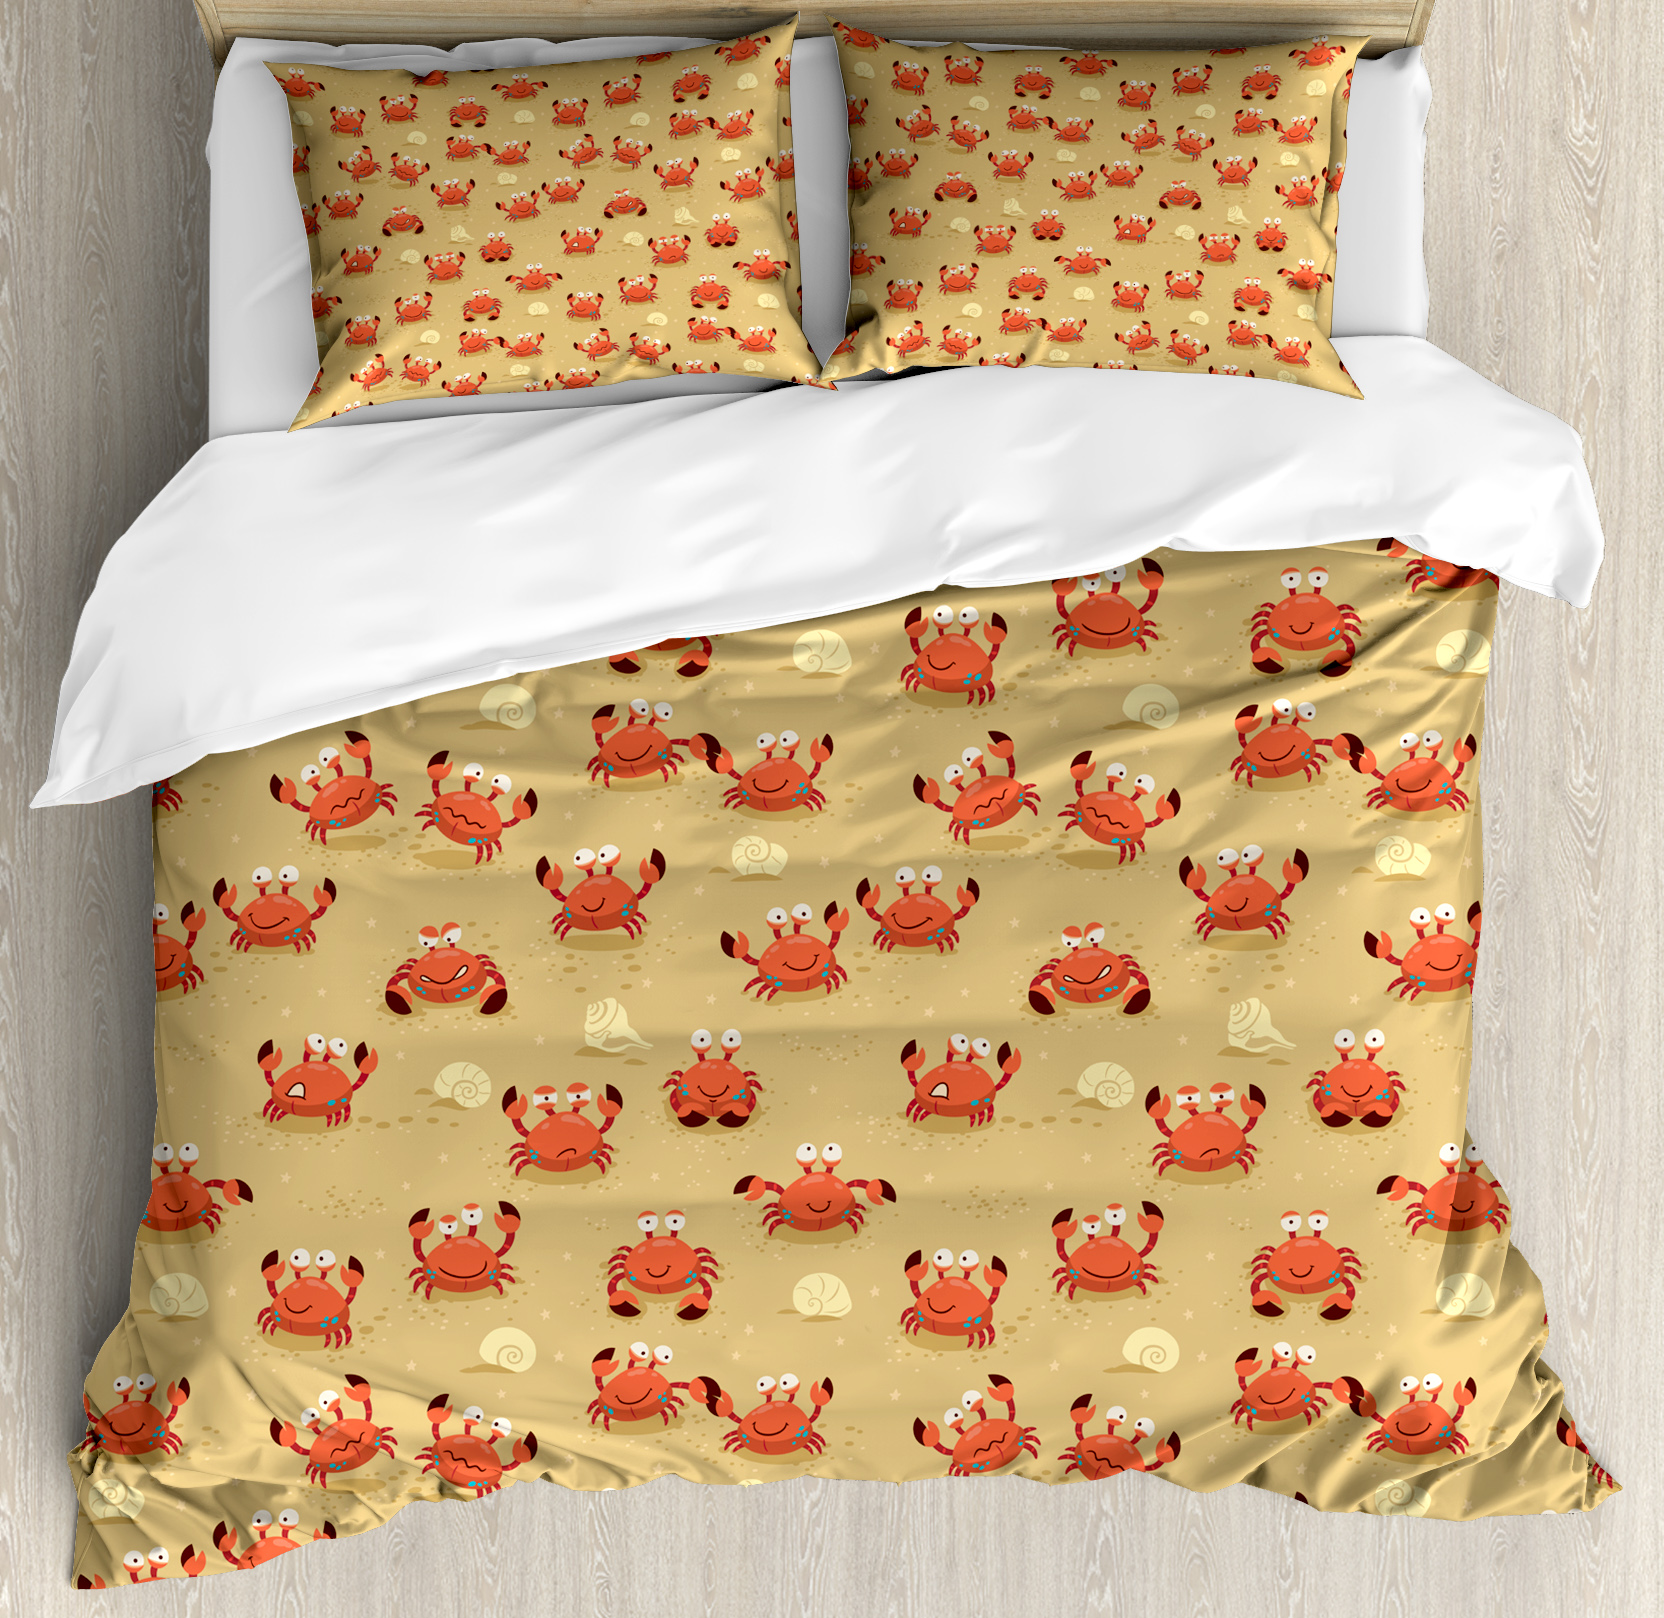 Crabs King Size Duvet Cover Set, Playful Childish Sea Animals on a Sandy Beach with Shells Kids Design Fauna, Decorative 3 Piece Bedding Set with 2 Pillow Shams, Pale Brown Orange, by Ambesonne